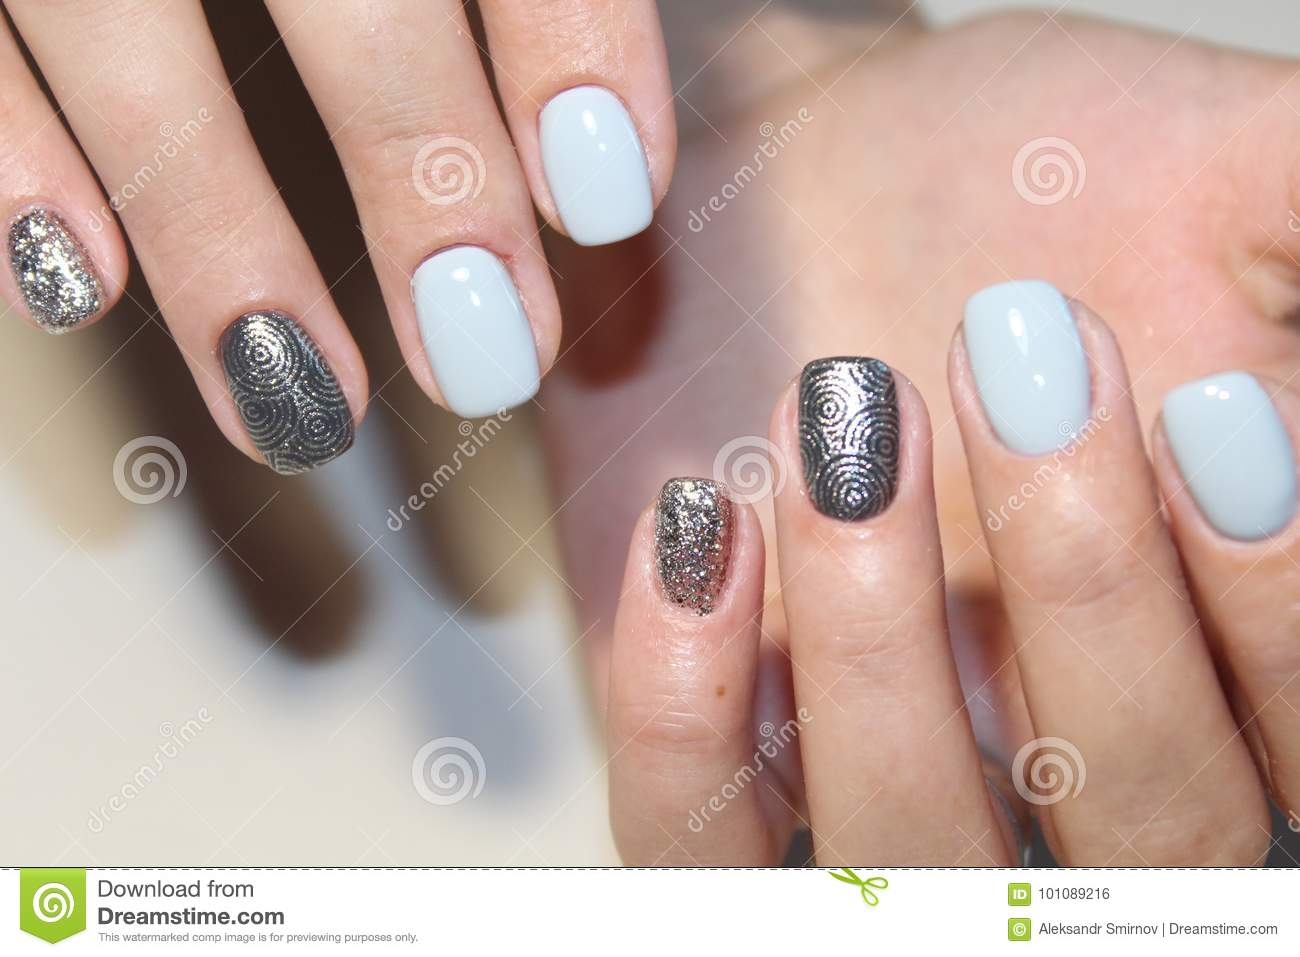 Tender Design Manicure For Long Nails Stock Photo - Image of acrylic ...